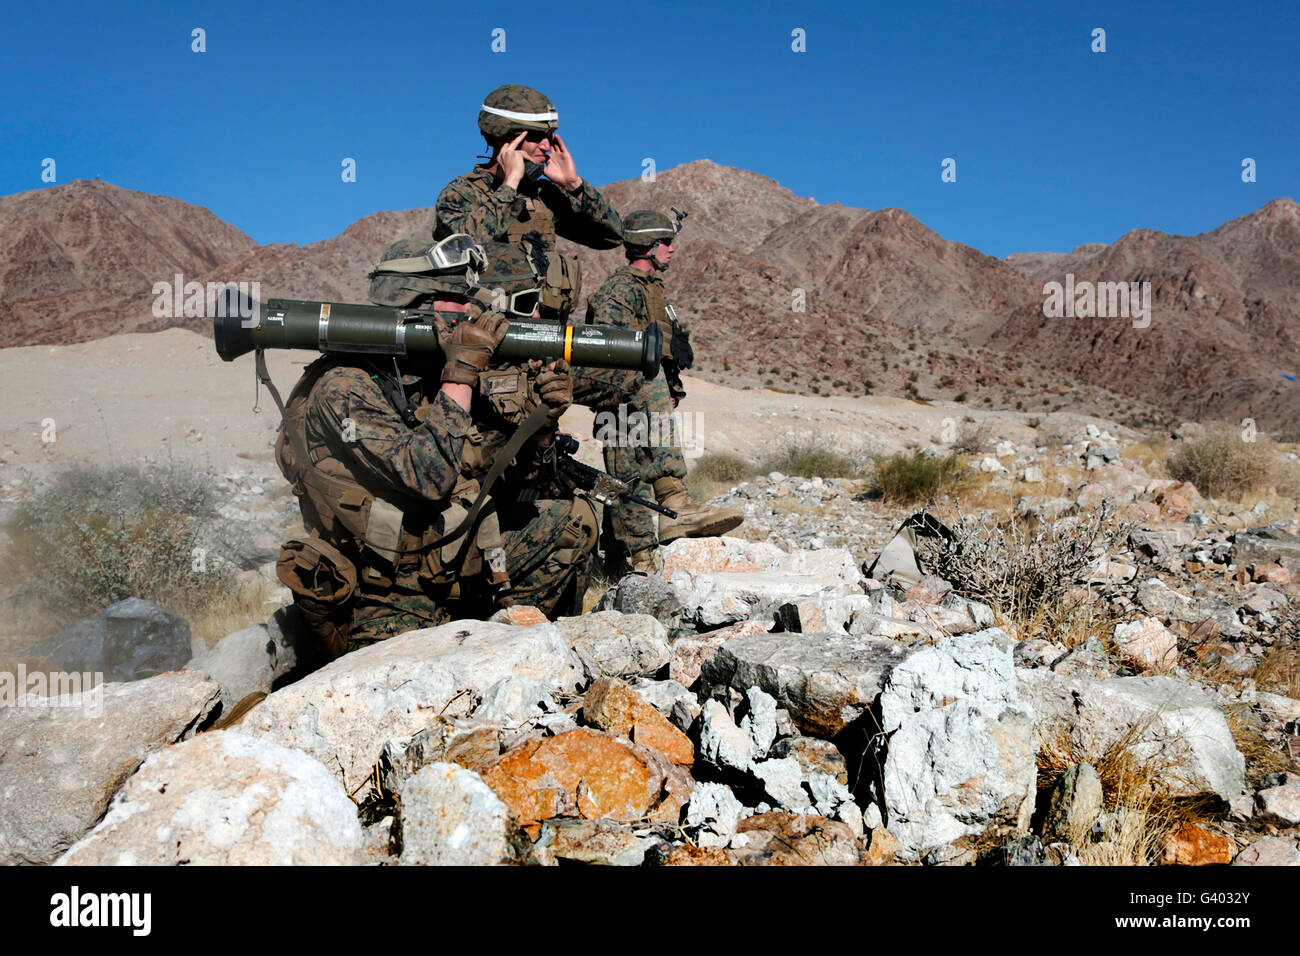 U.S. Marines provide supportive fire with the AT-4 rocket launcher. - Stock Image